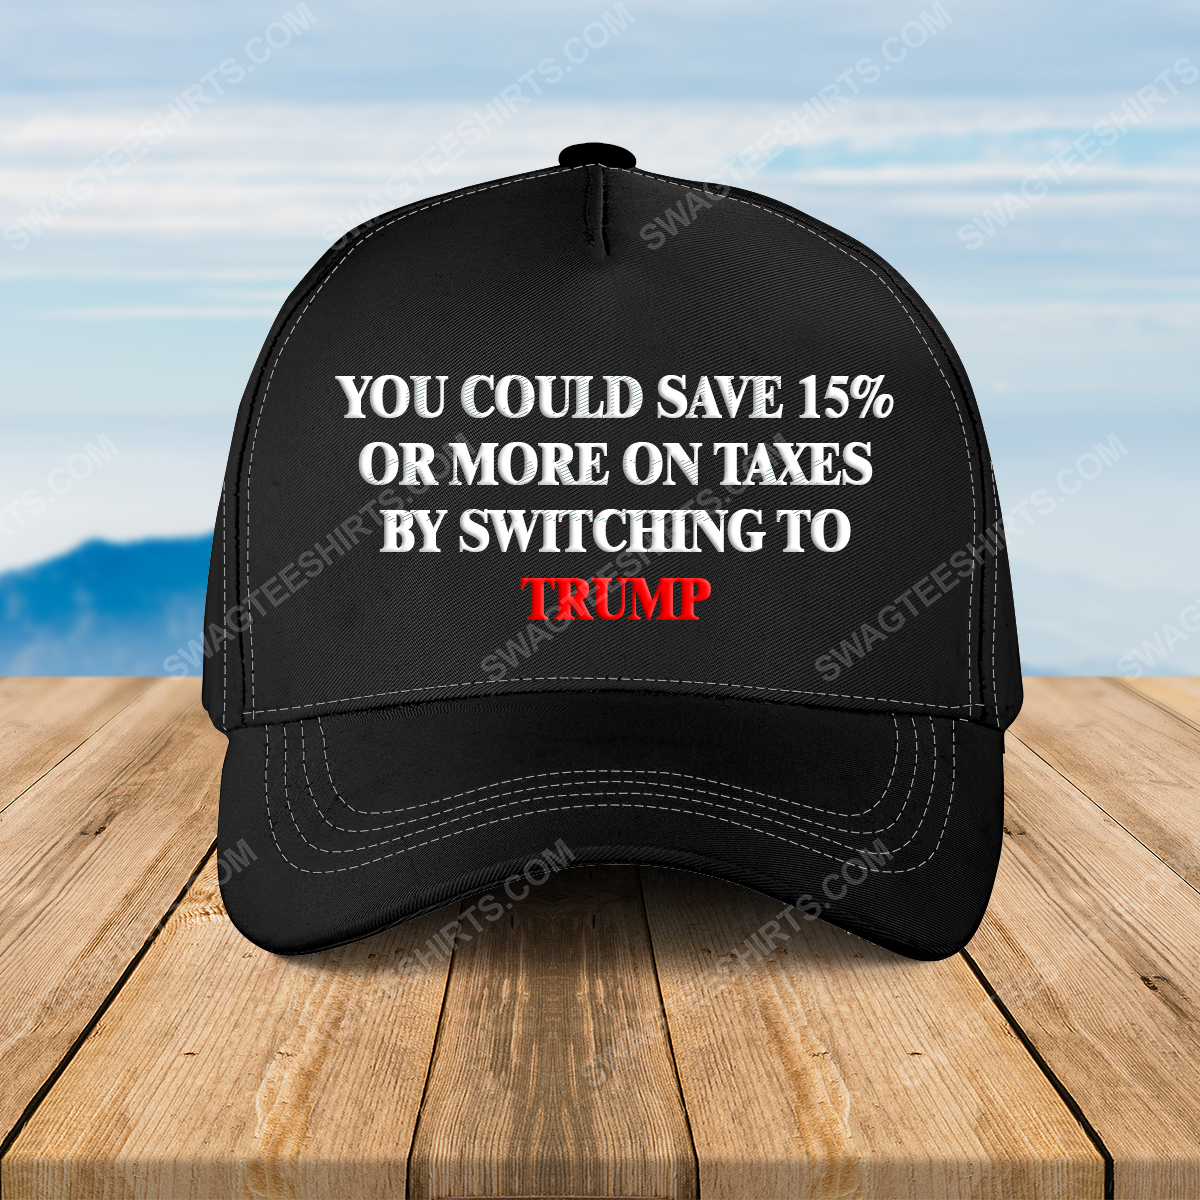 You could save 15 percent or more on taxes by switching to trump full print classic hat 1 - Copy (2)